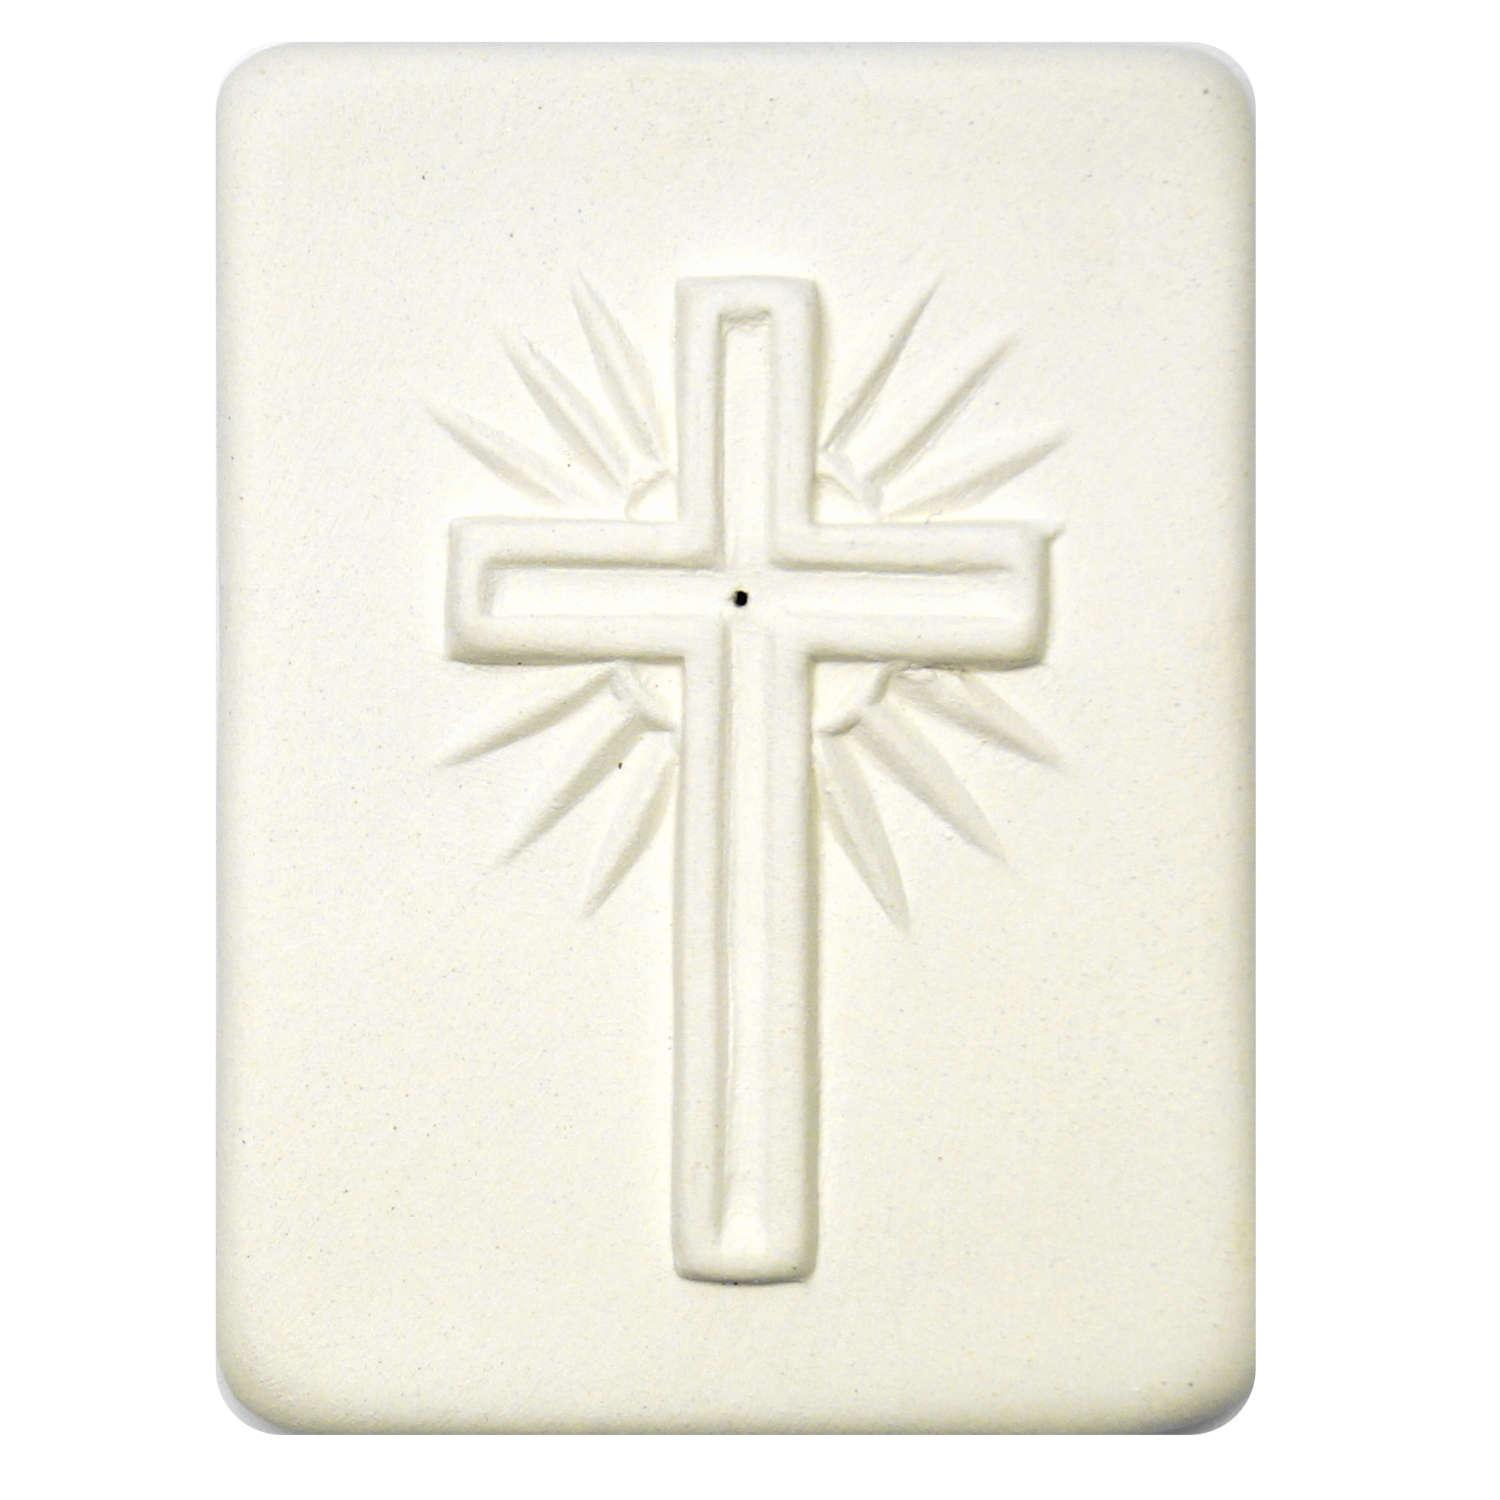 Delphi Studio Cross with Rays Impression Tile